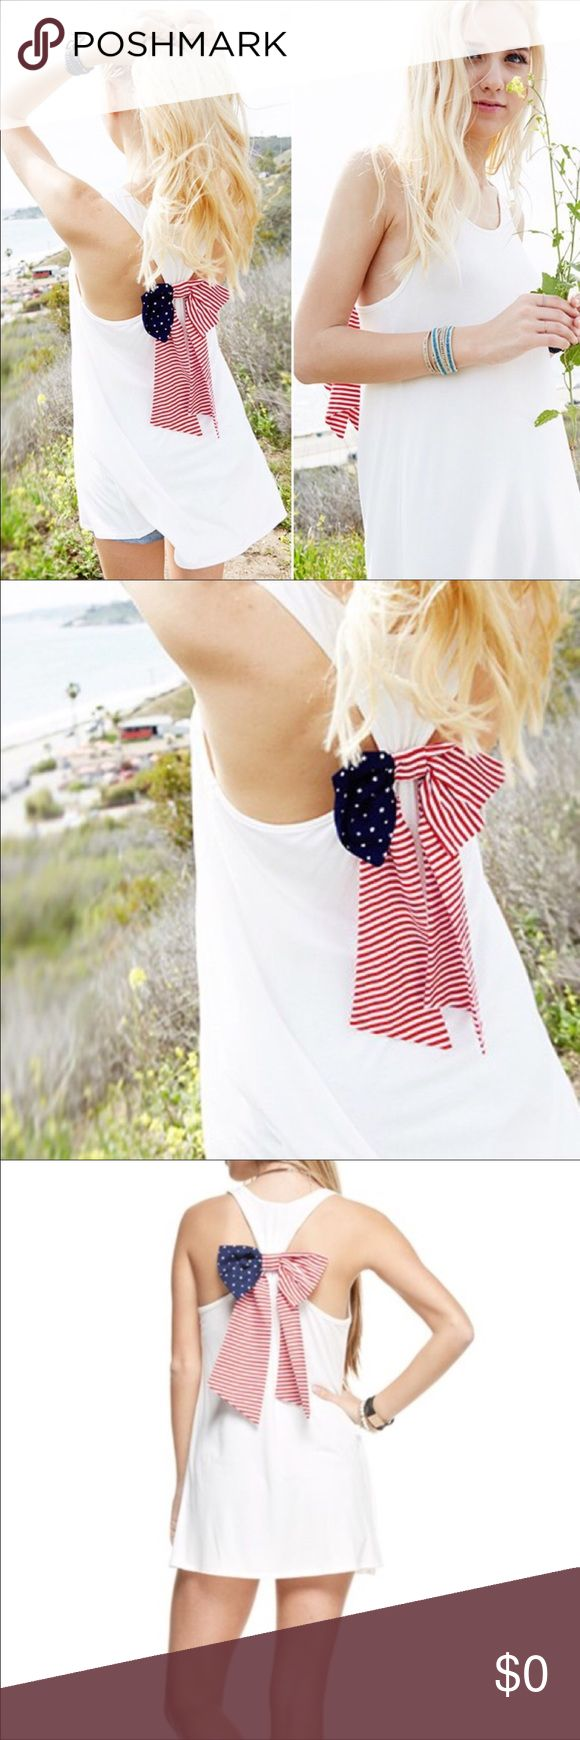 COMING SOON!! 🇺🇸 Americana Racerback Tunic🇺🇸 White Racerback Tunic Tank with American flag print bow on back. Super comfy & stretchy. Twilight Gypsy Collective Tops Tank Tops